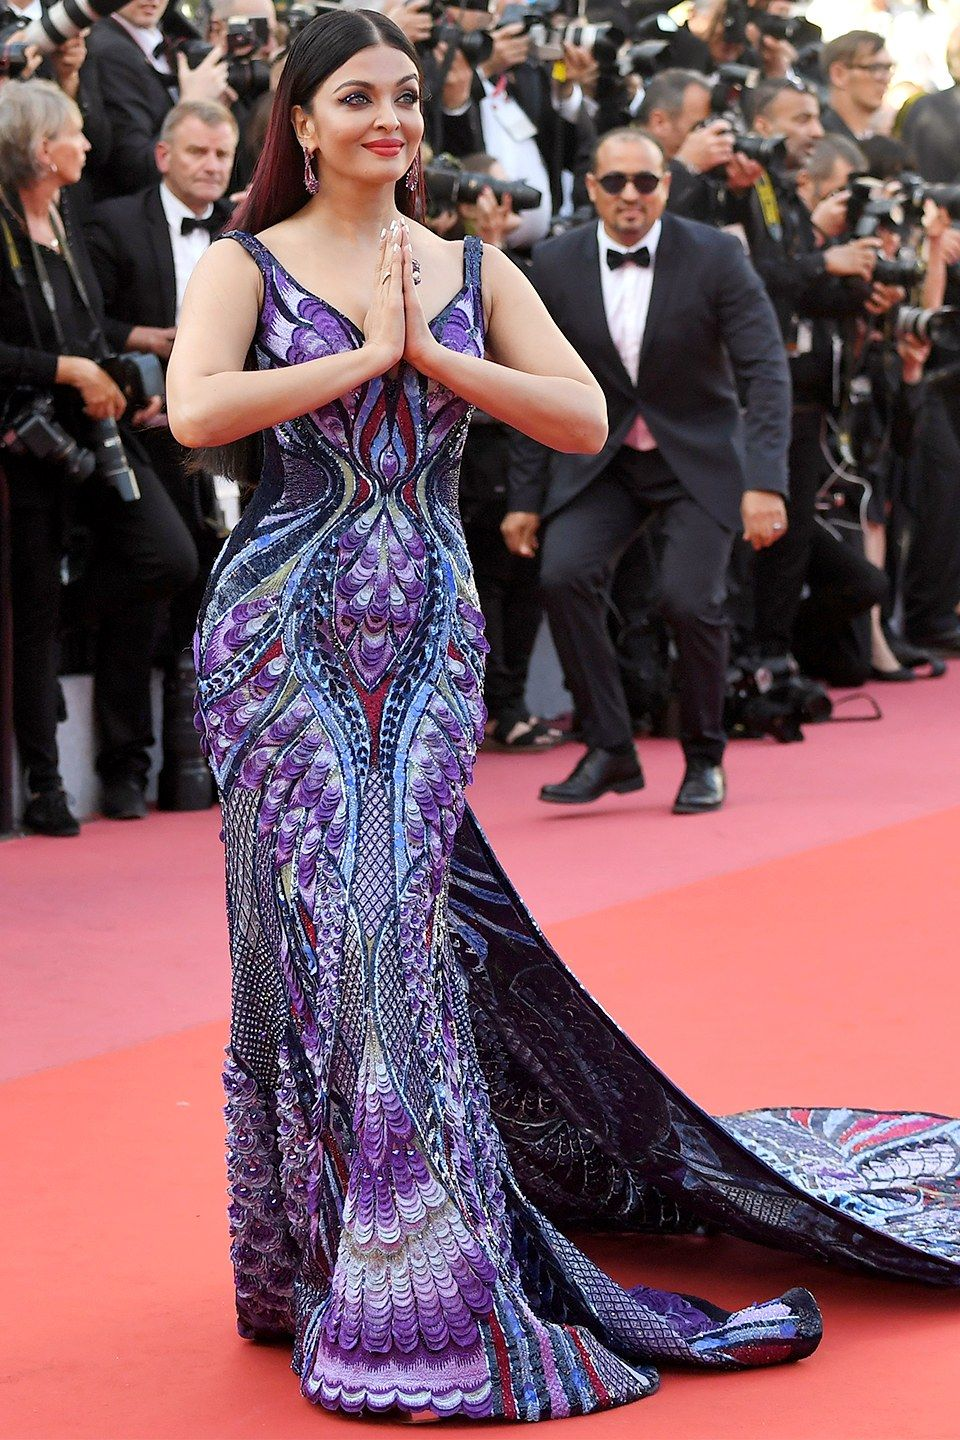 Cannes Film Festival 2018 The Must See Looks Bollywood Fashion Celebrity Style Cannes Film Festival